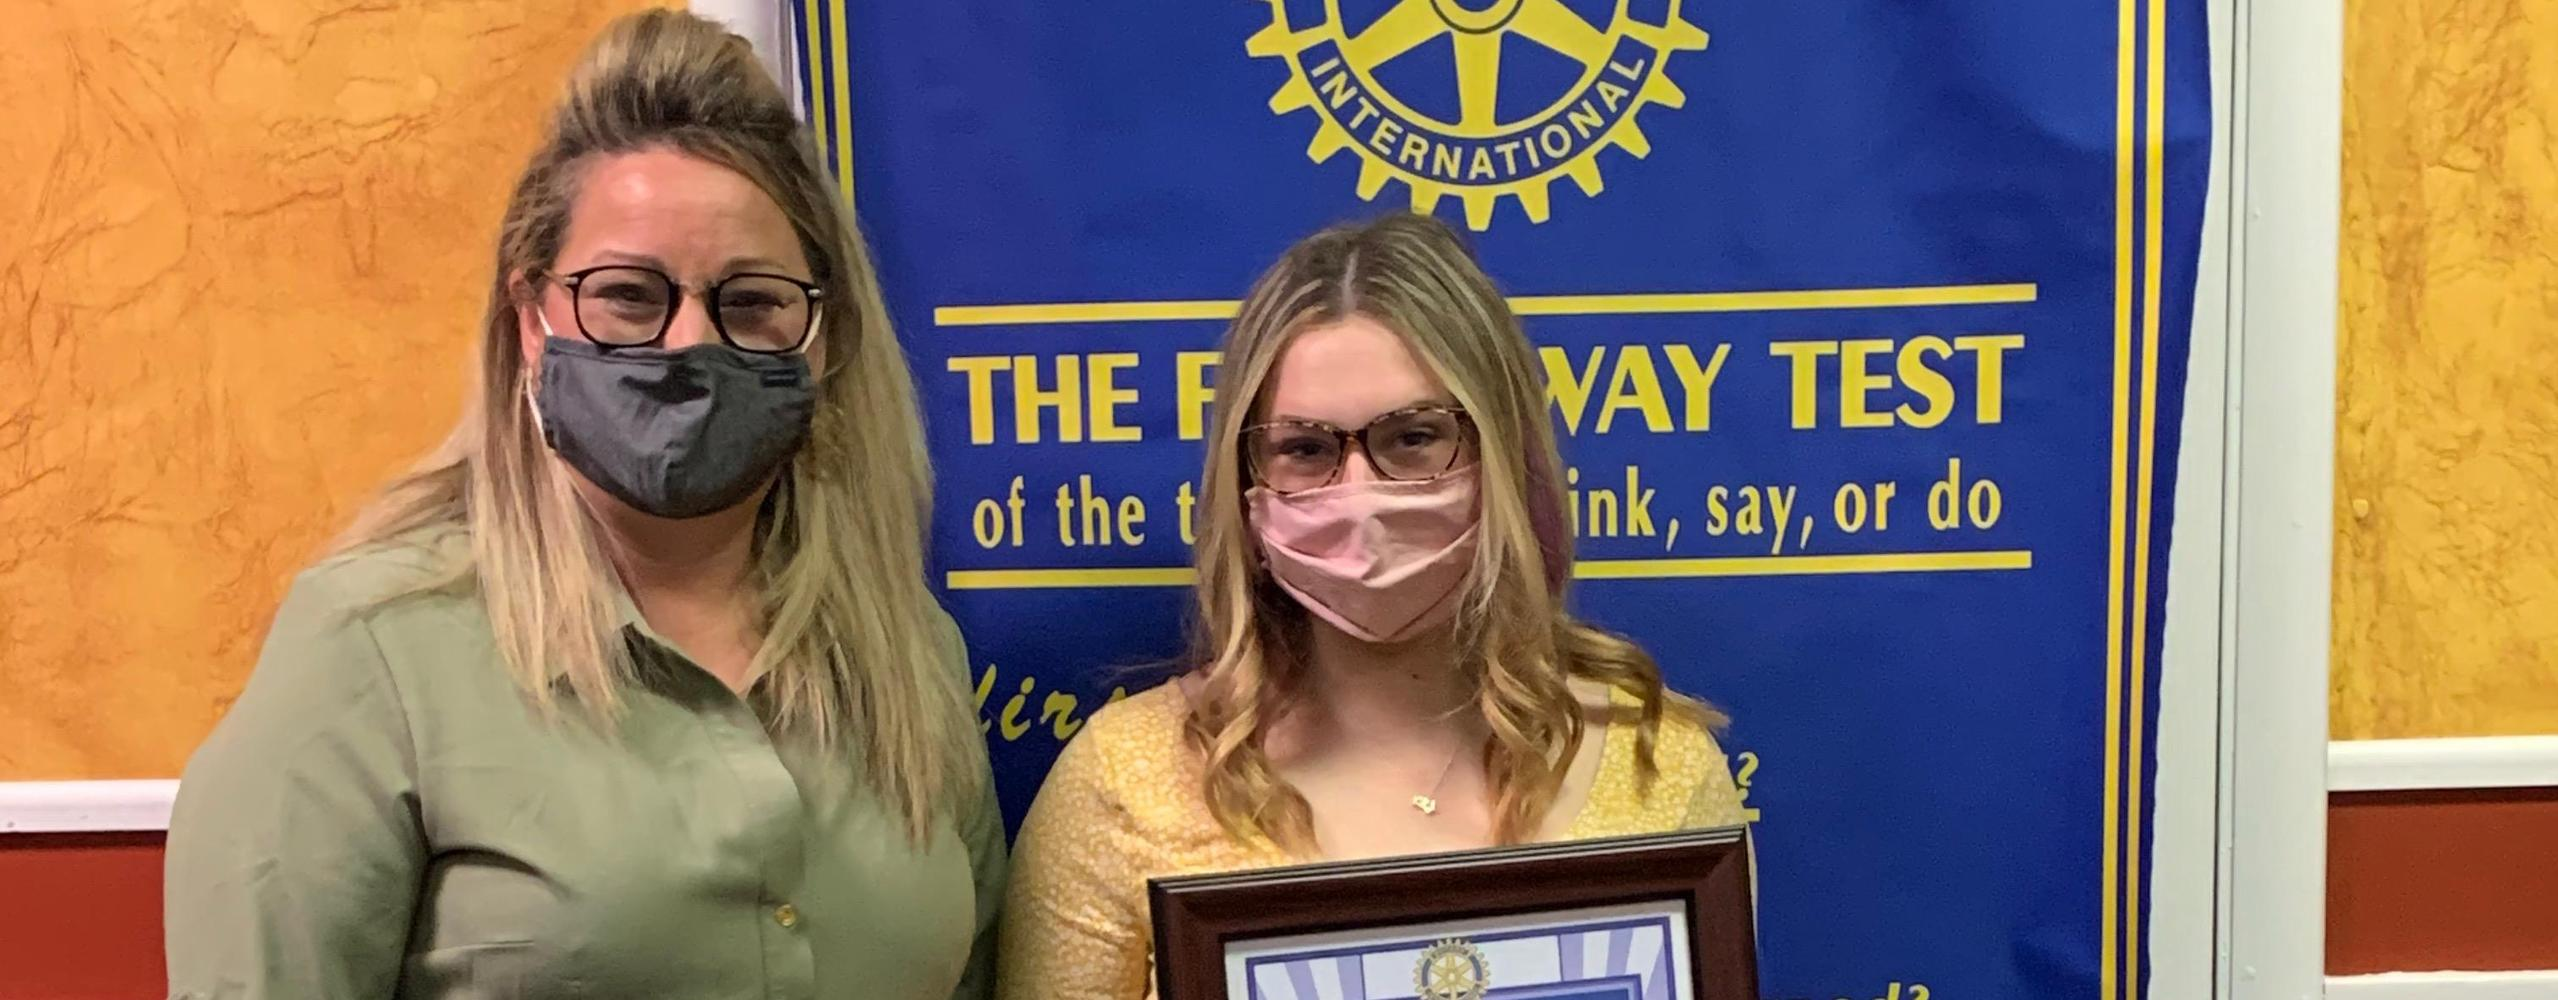 Congrats to Mikayla Gebhart for being selected as Rotary Student of the Month for March 2021 (joined by her nominator Dr. Britton)!